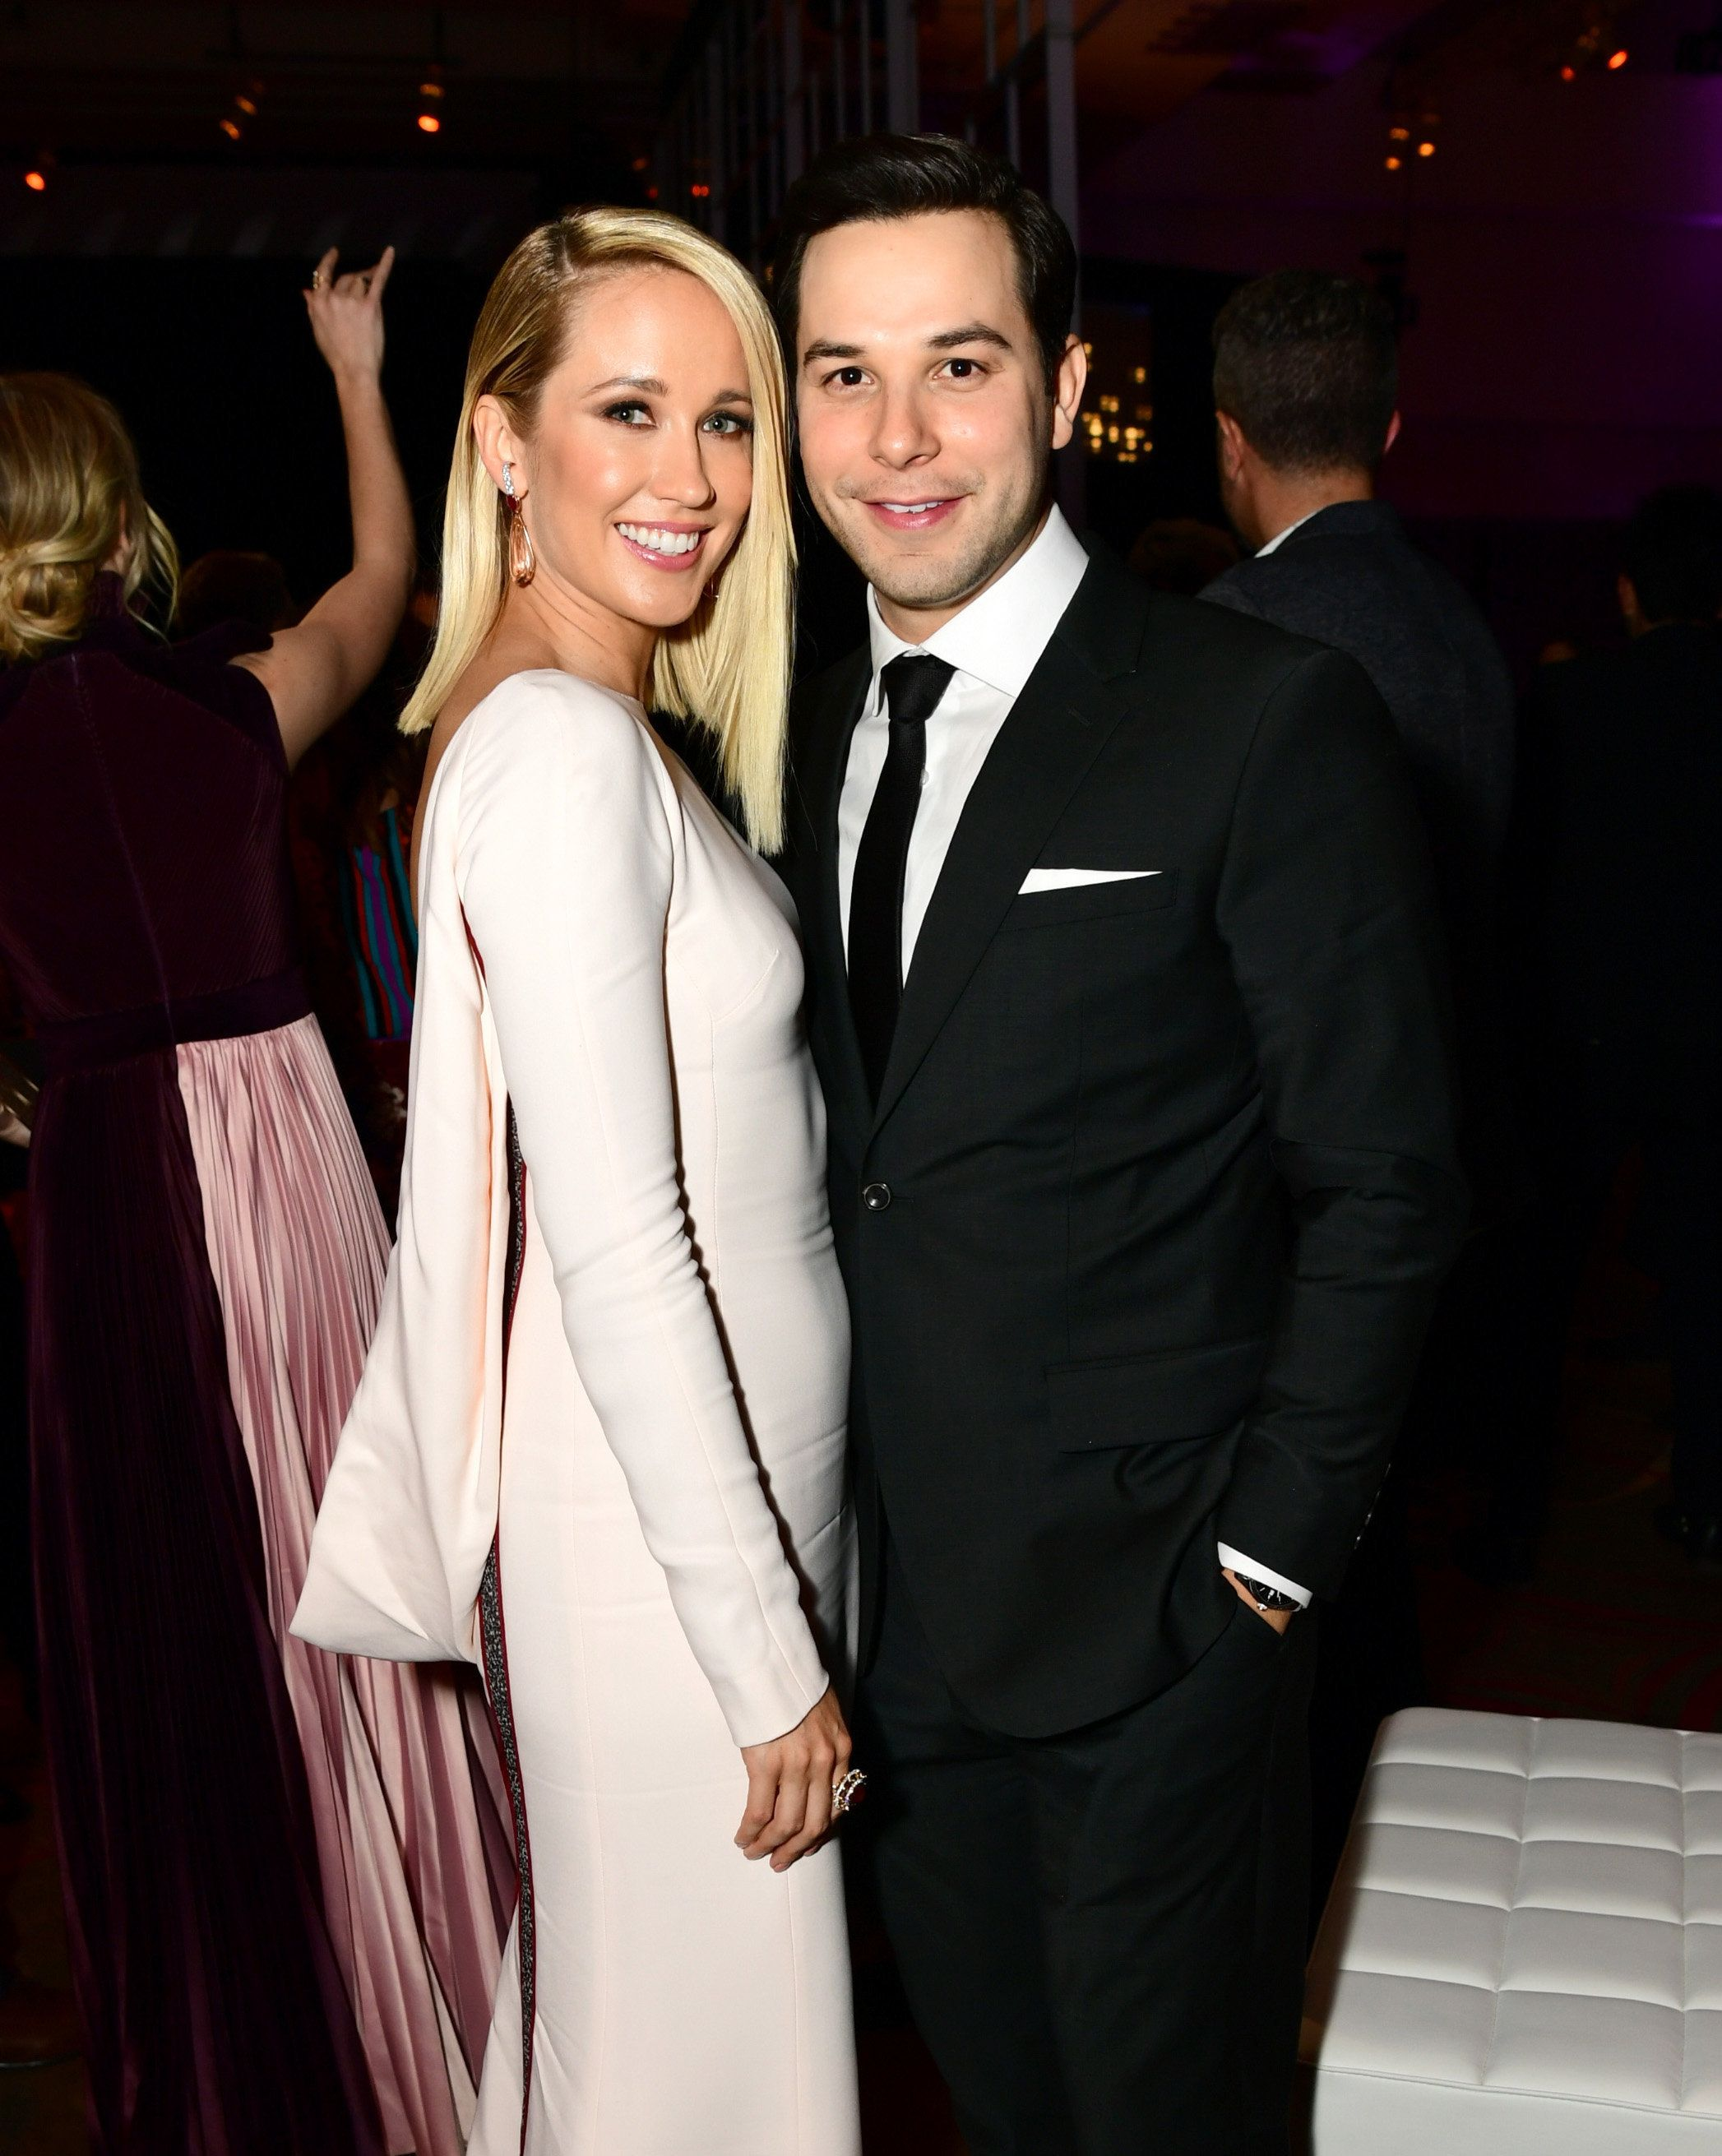 'Pitch Perfect' Co-Stars Skylar Astin, Anna Camp Break Up